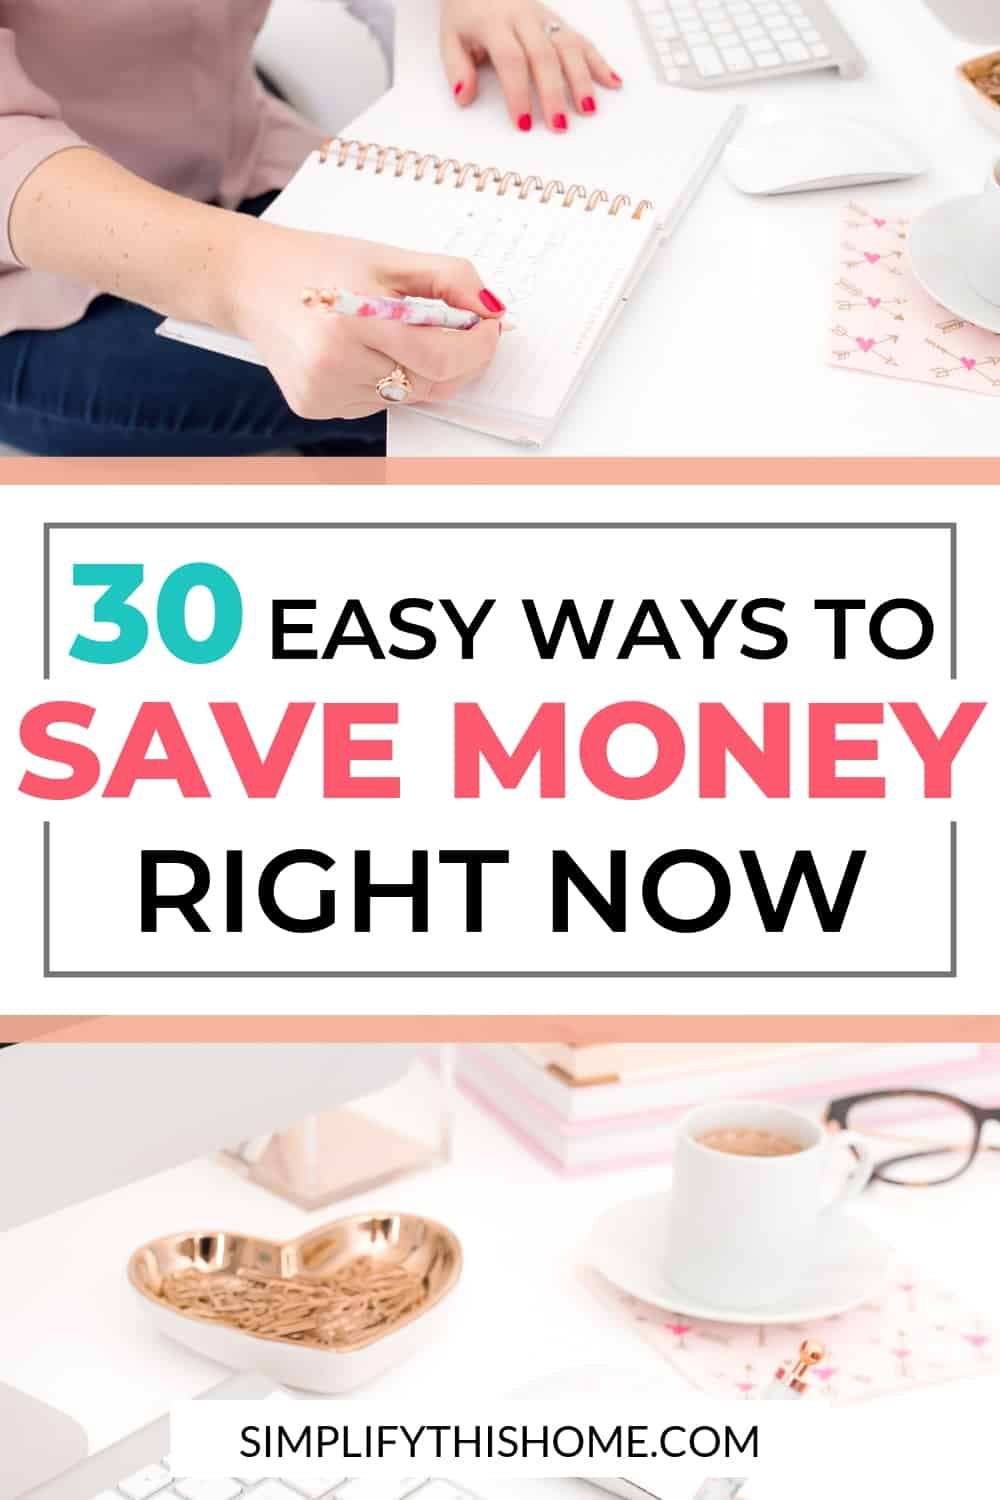 Easy ways to save money right now